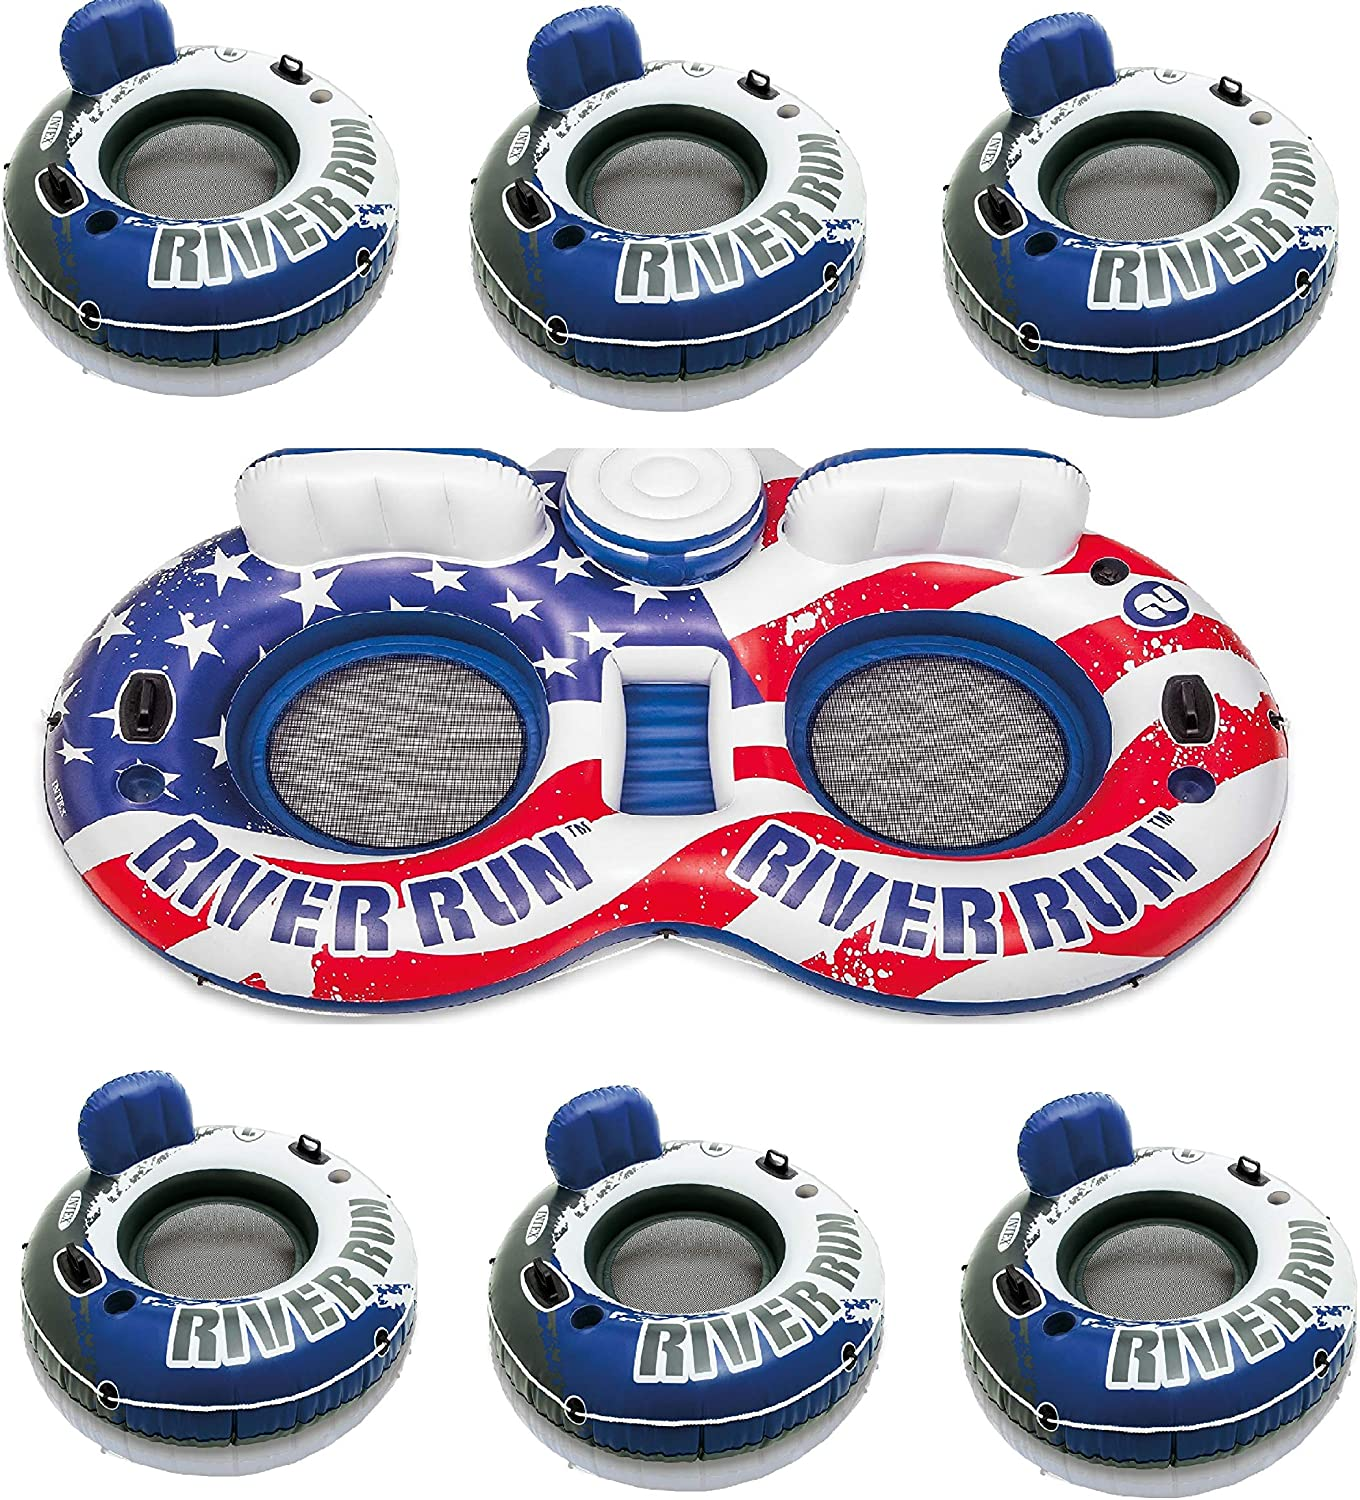 Spring new work Intex American Flag 2 Person Float 1 River 6 Max 89% OFF w Run Tube